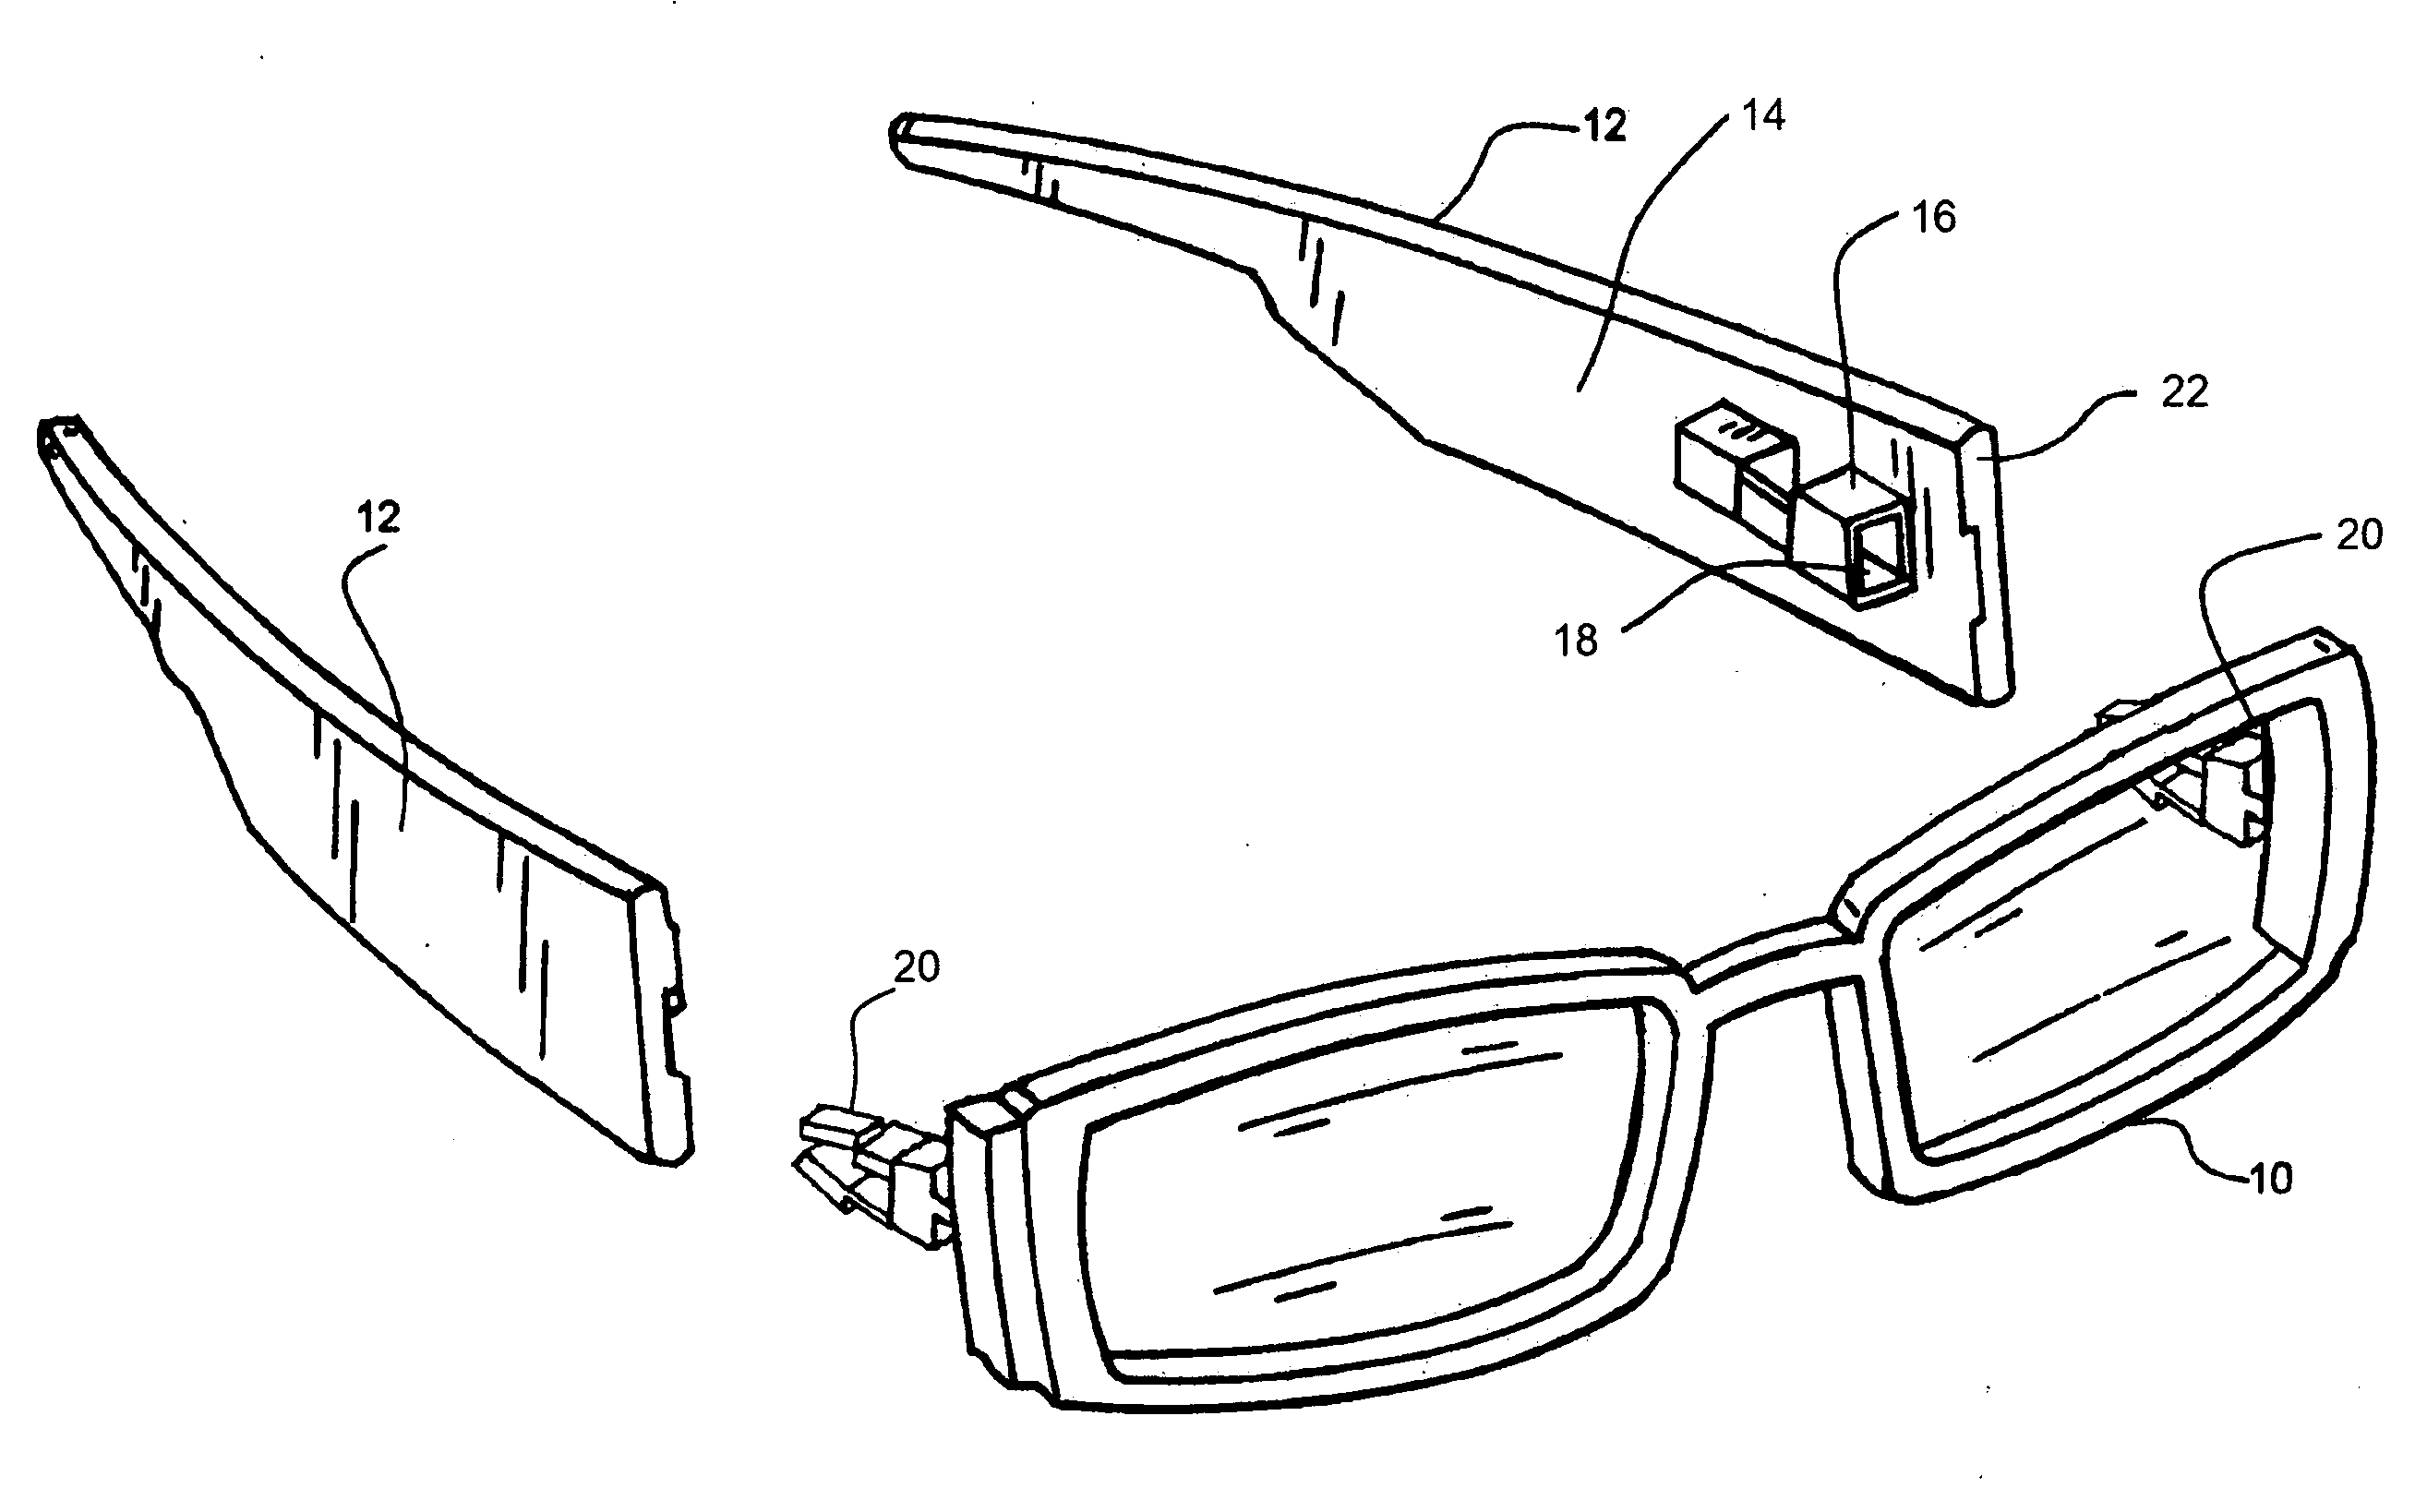 Eyeglass Frames Changeable Arms : Patent US20120257159 - Side arm release system for ...